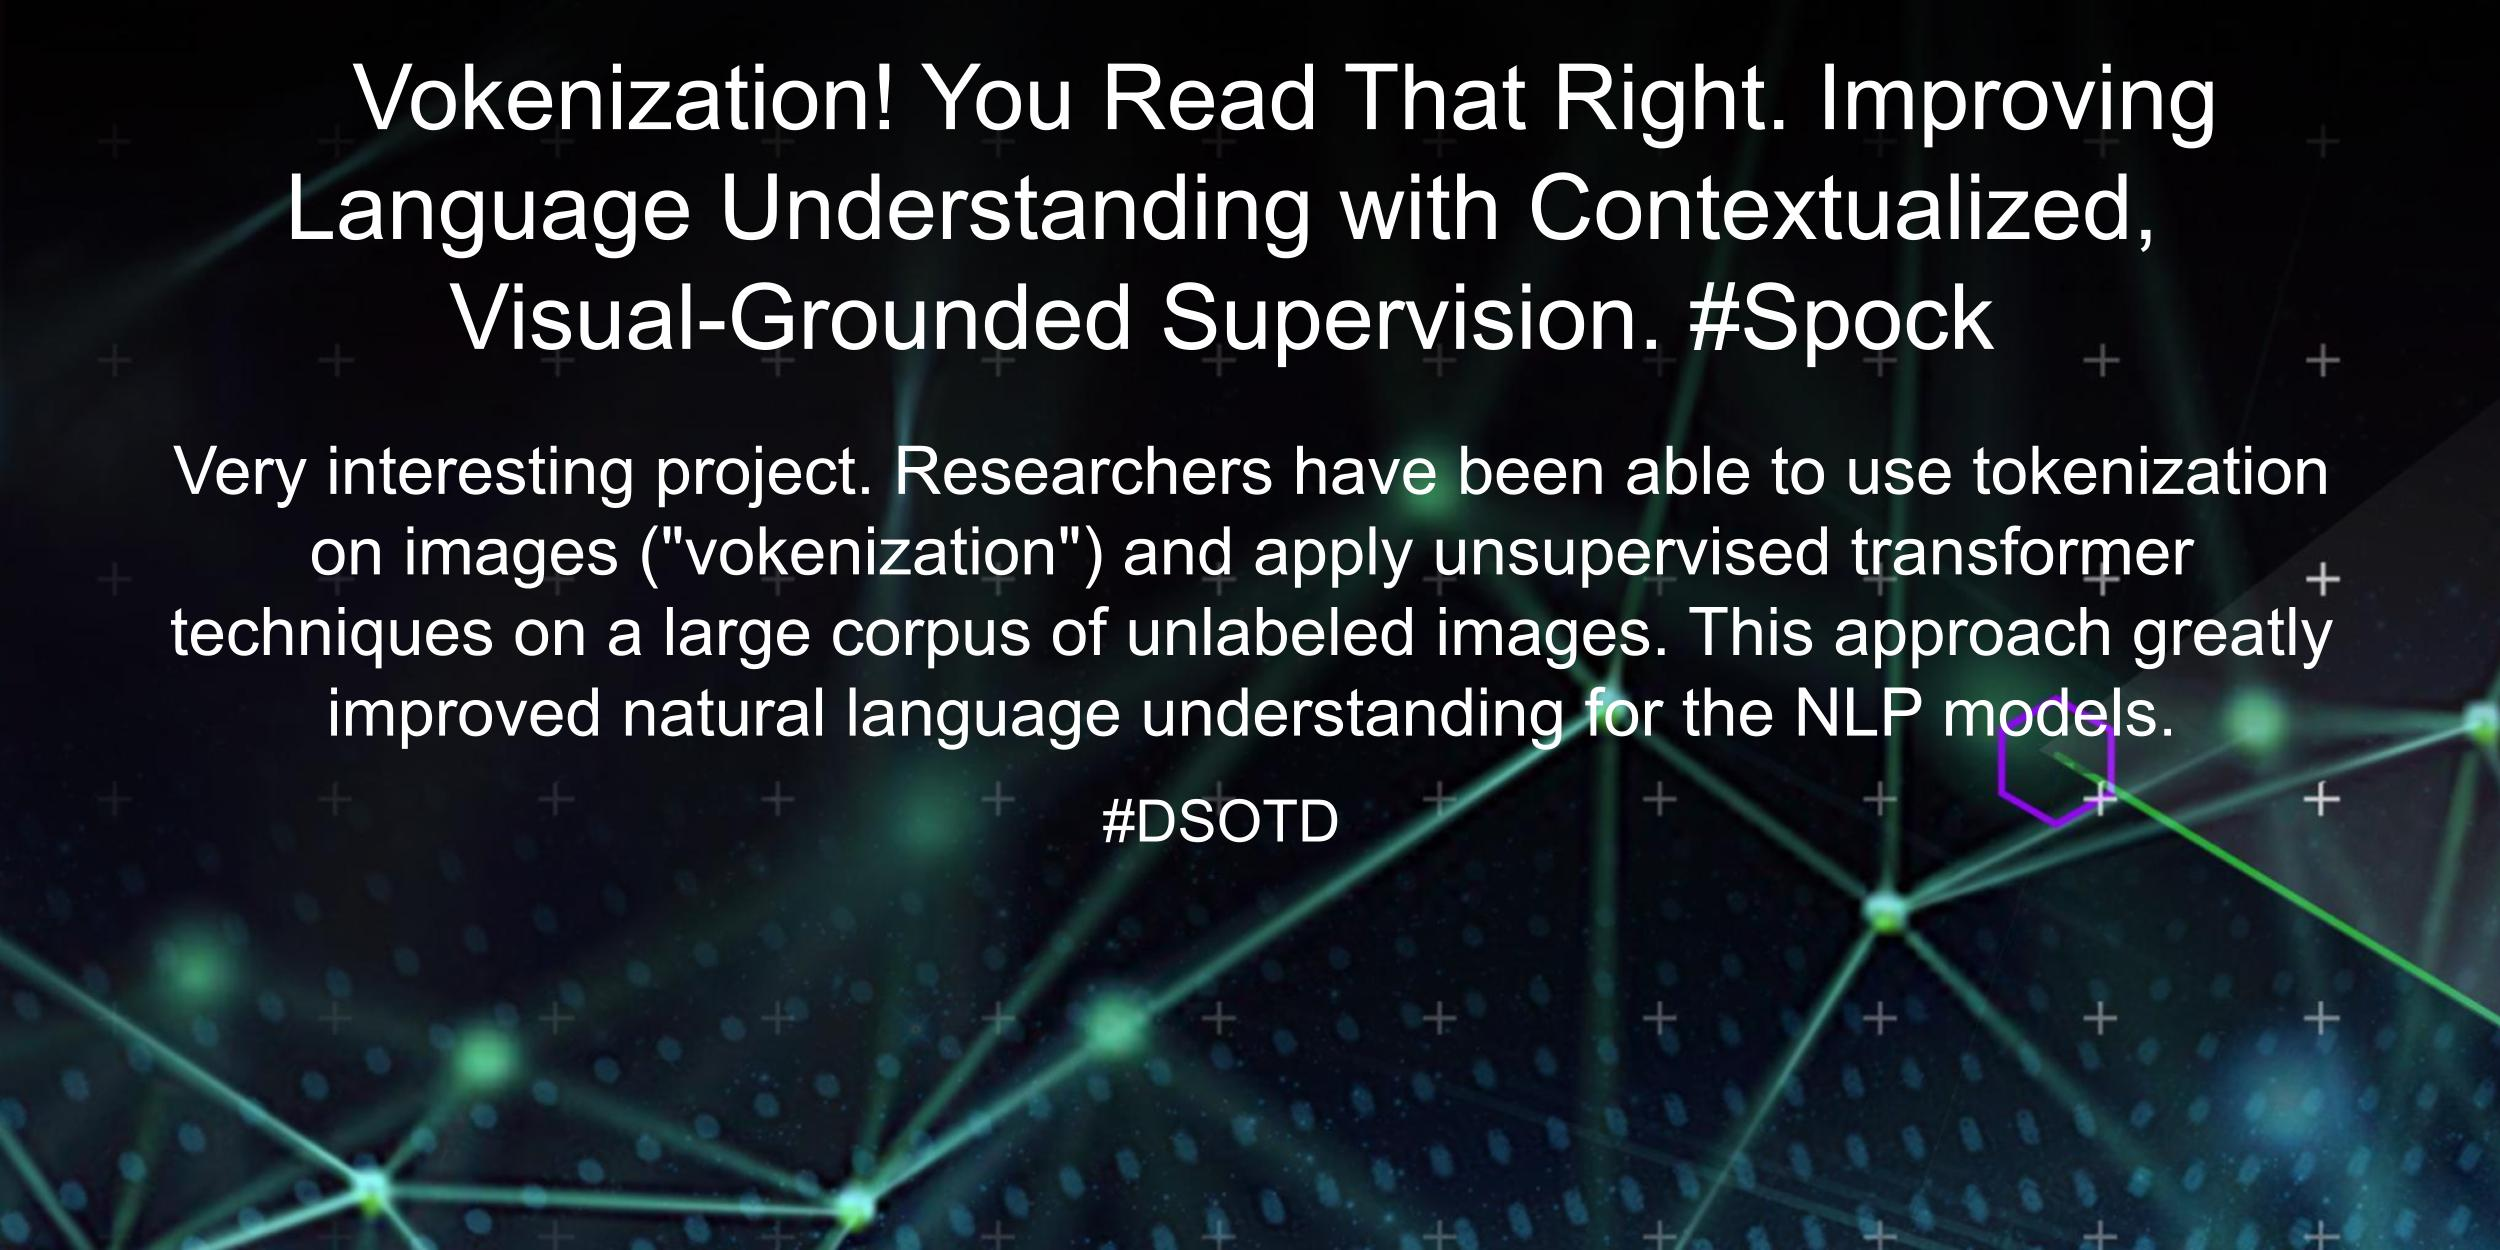 """Very interesting project. Researchers have been able to use tokenization on images (""""""""vokenization"""""""") and apply unsupervised transformer techniques on a large corpus of unlabeled images. This approach greatly improved natural language understanding for the NLP models."""